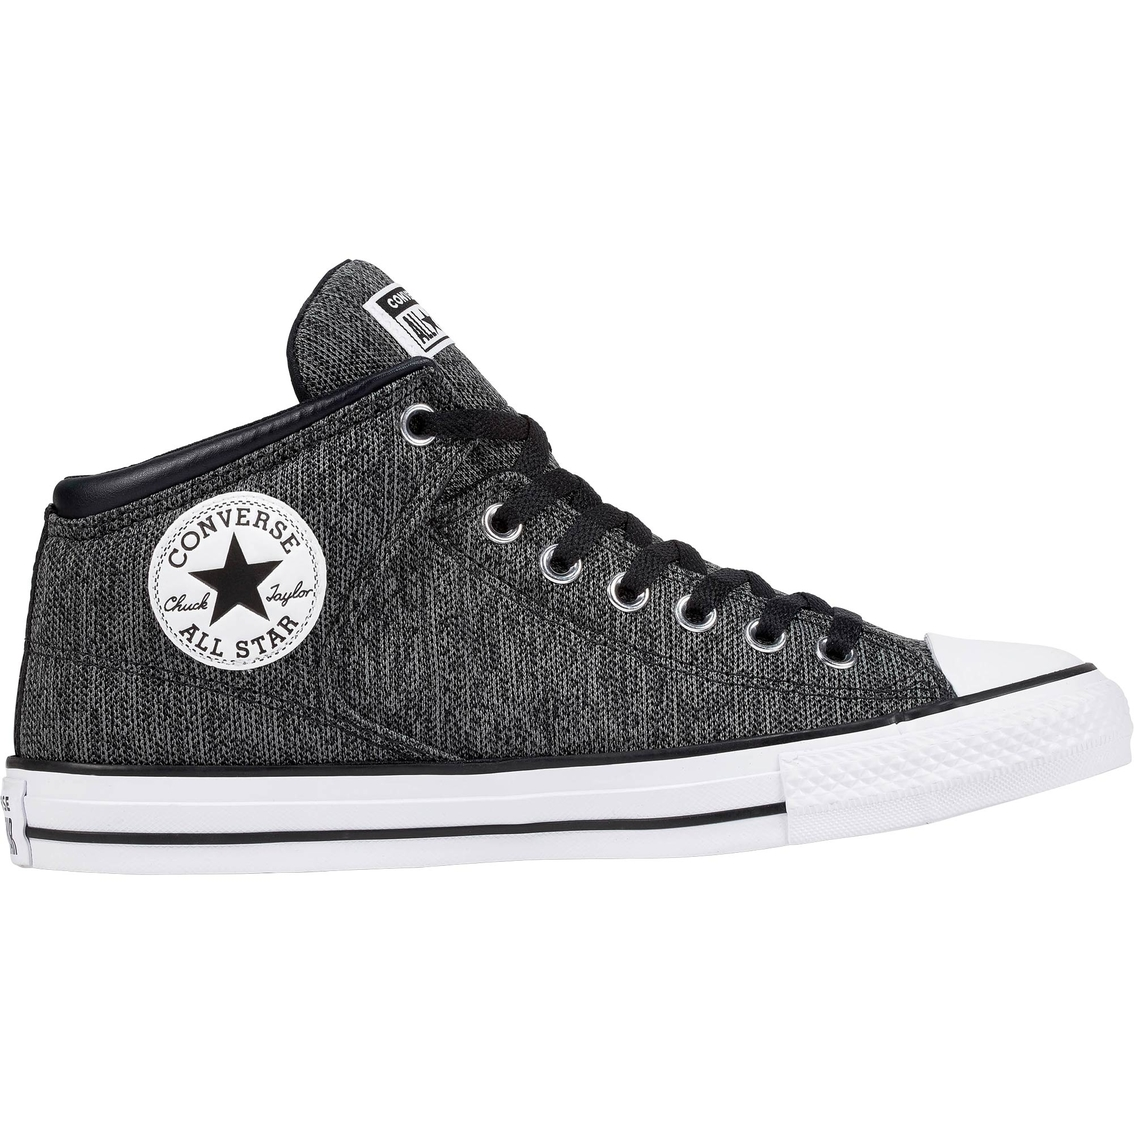 a1e1726dc3c7 Converse Men s Chuck Taylor All-star High Top Street Sneakers ...